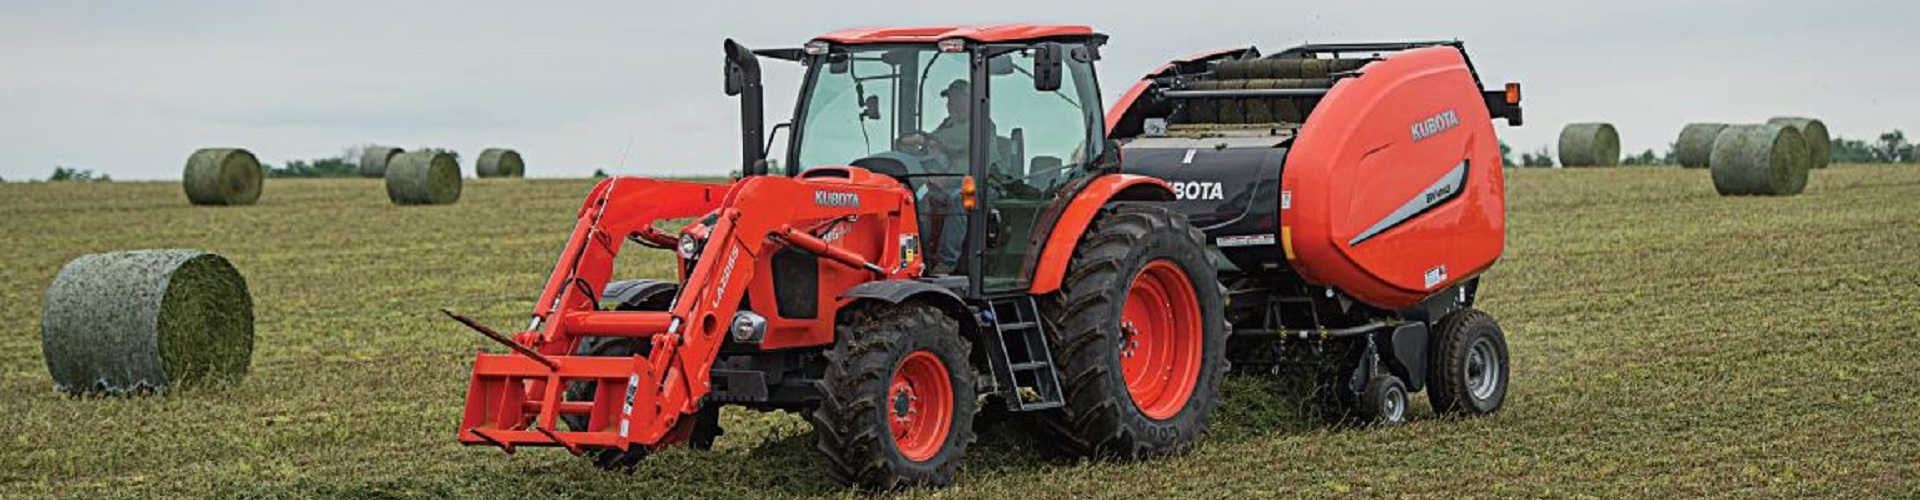 Kubota Balers & Implements